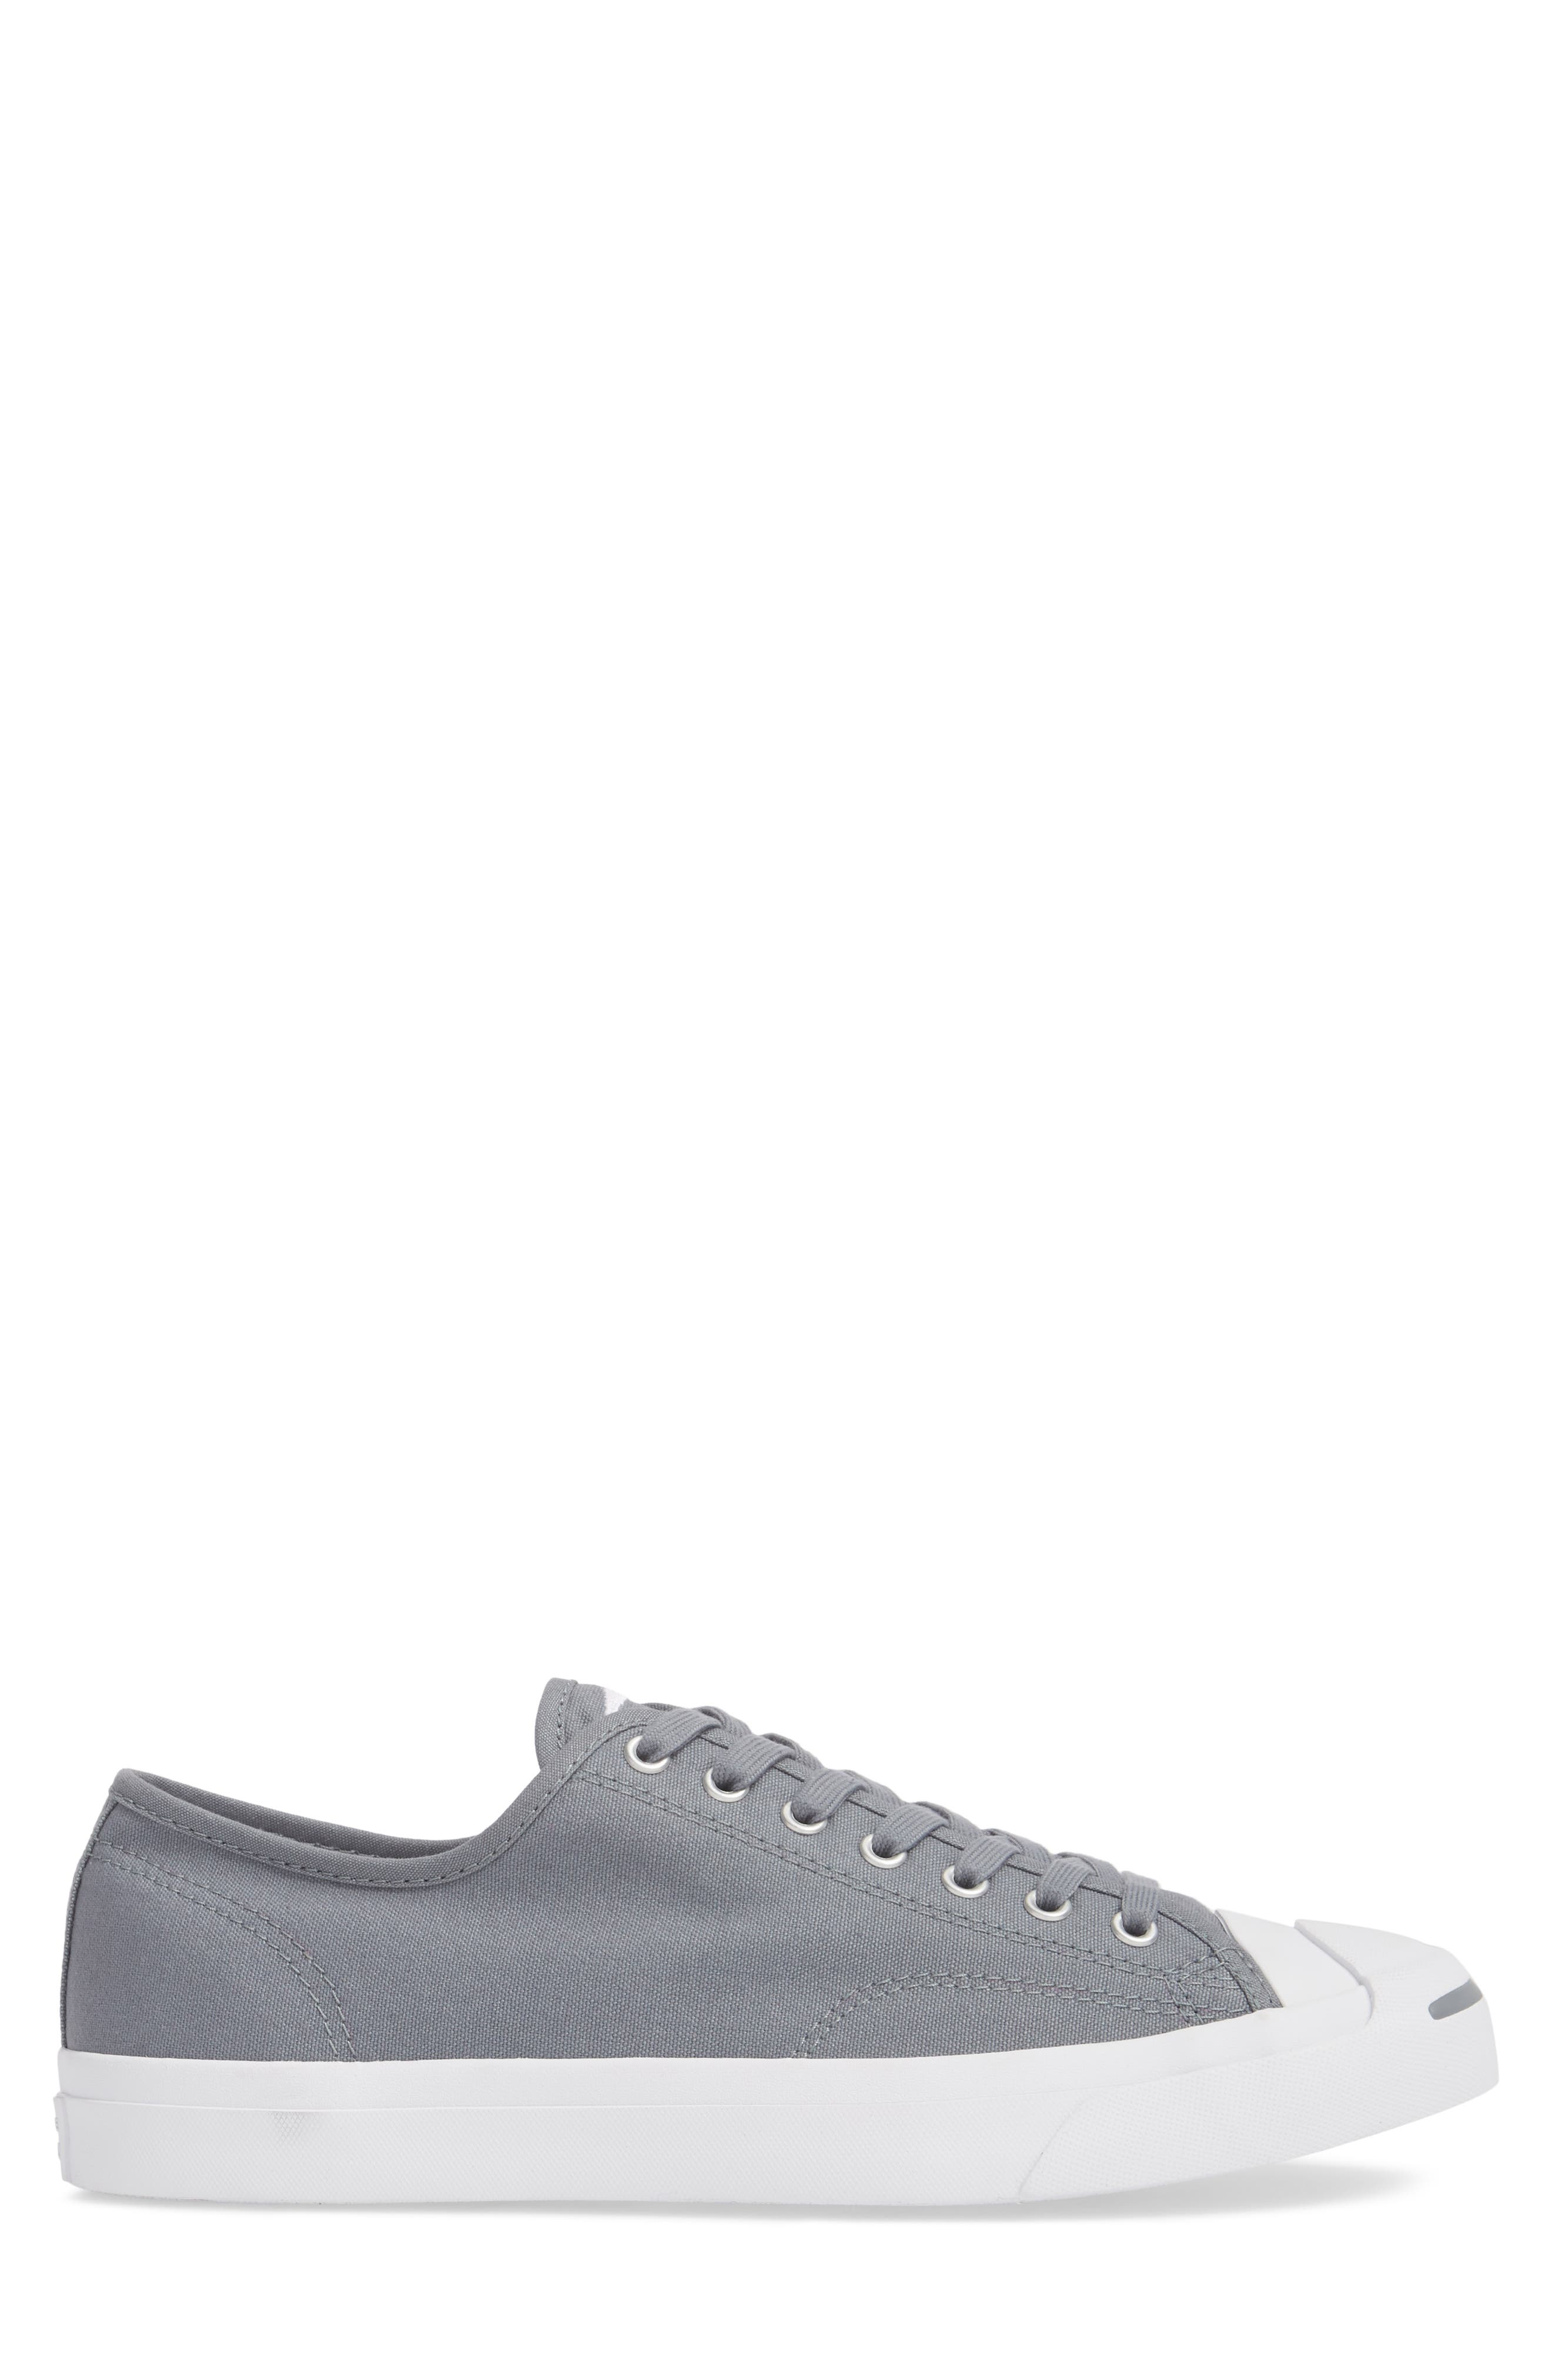 'Jack Purcell' Sneaker,                             Alternate thumbnail 3, color,                             Cool Grey Canvas